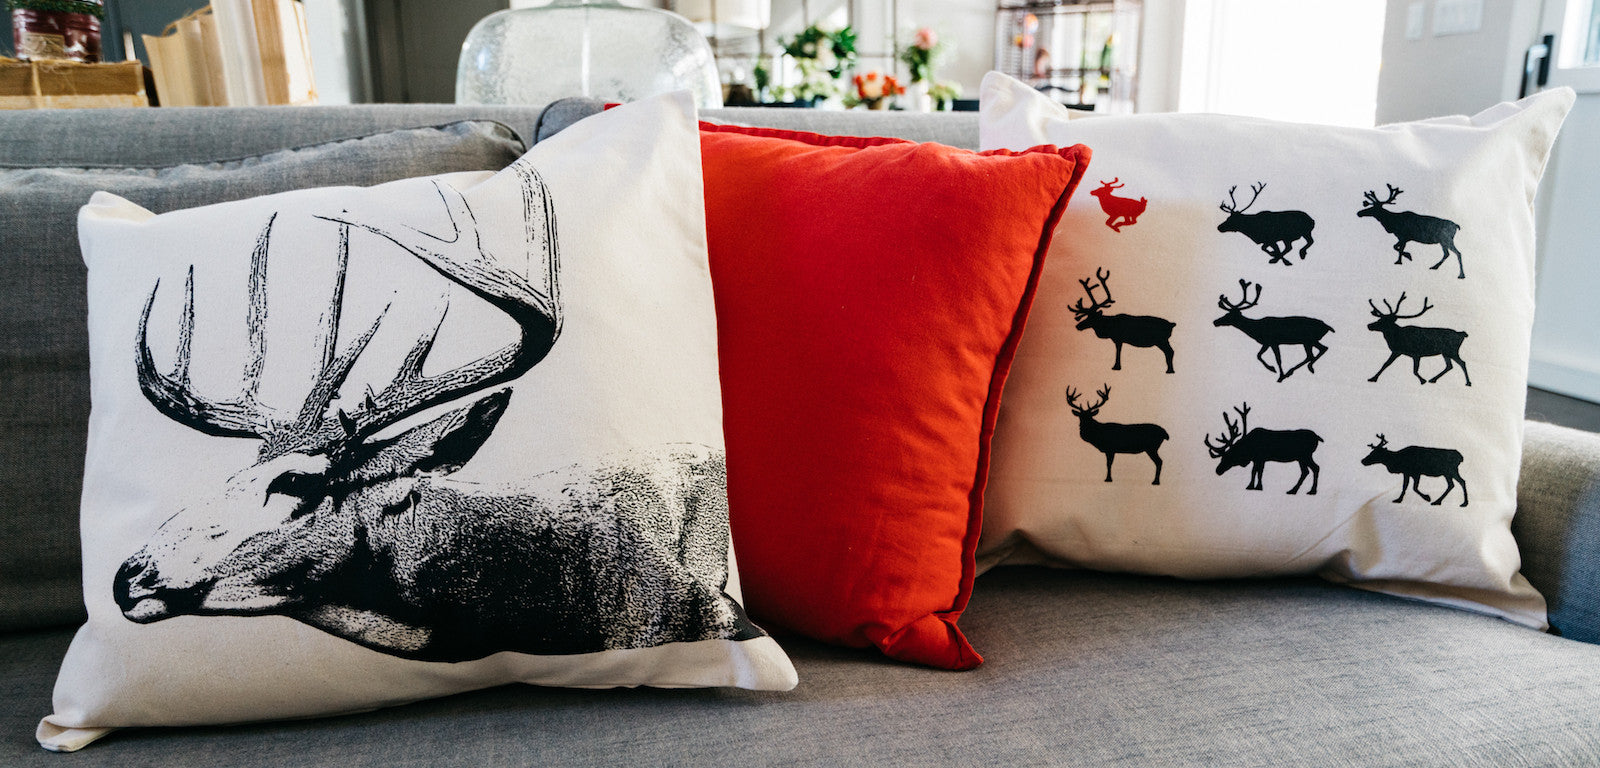 Pillow & Ornaments